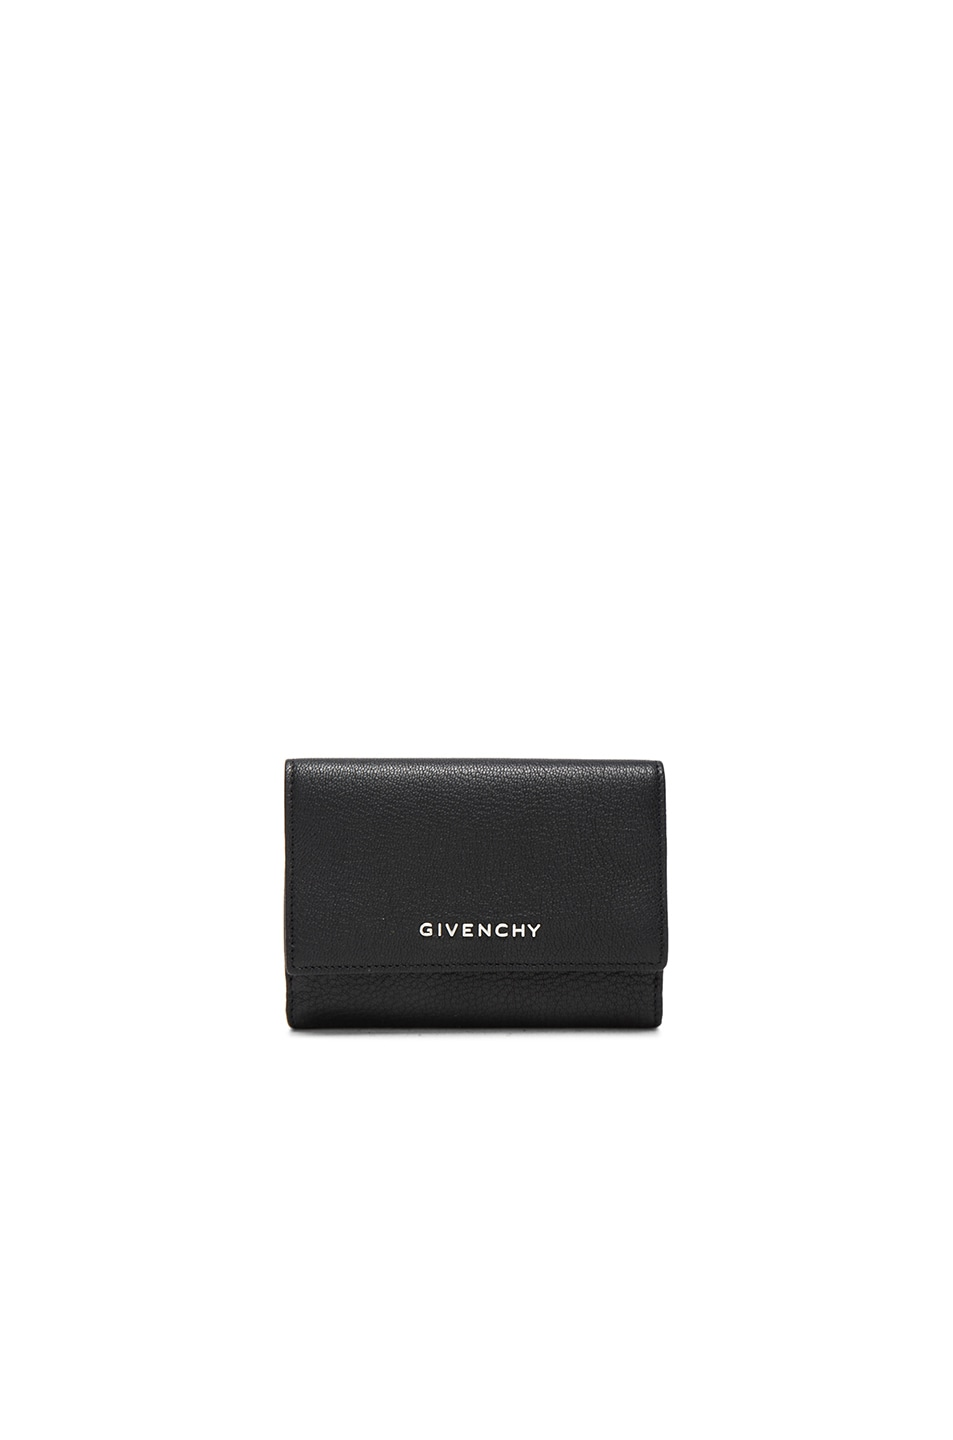 Image 1 of Givenchy Compact Wallet in Black